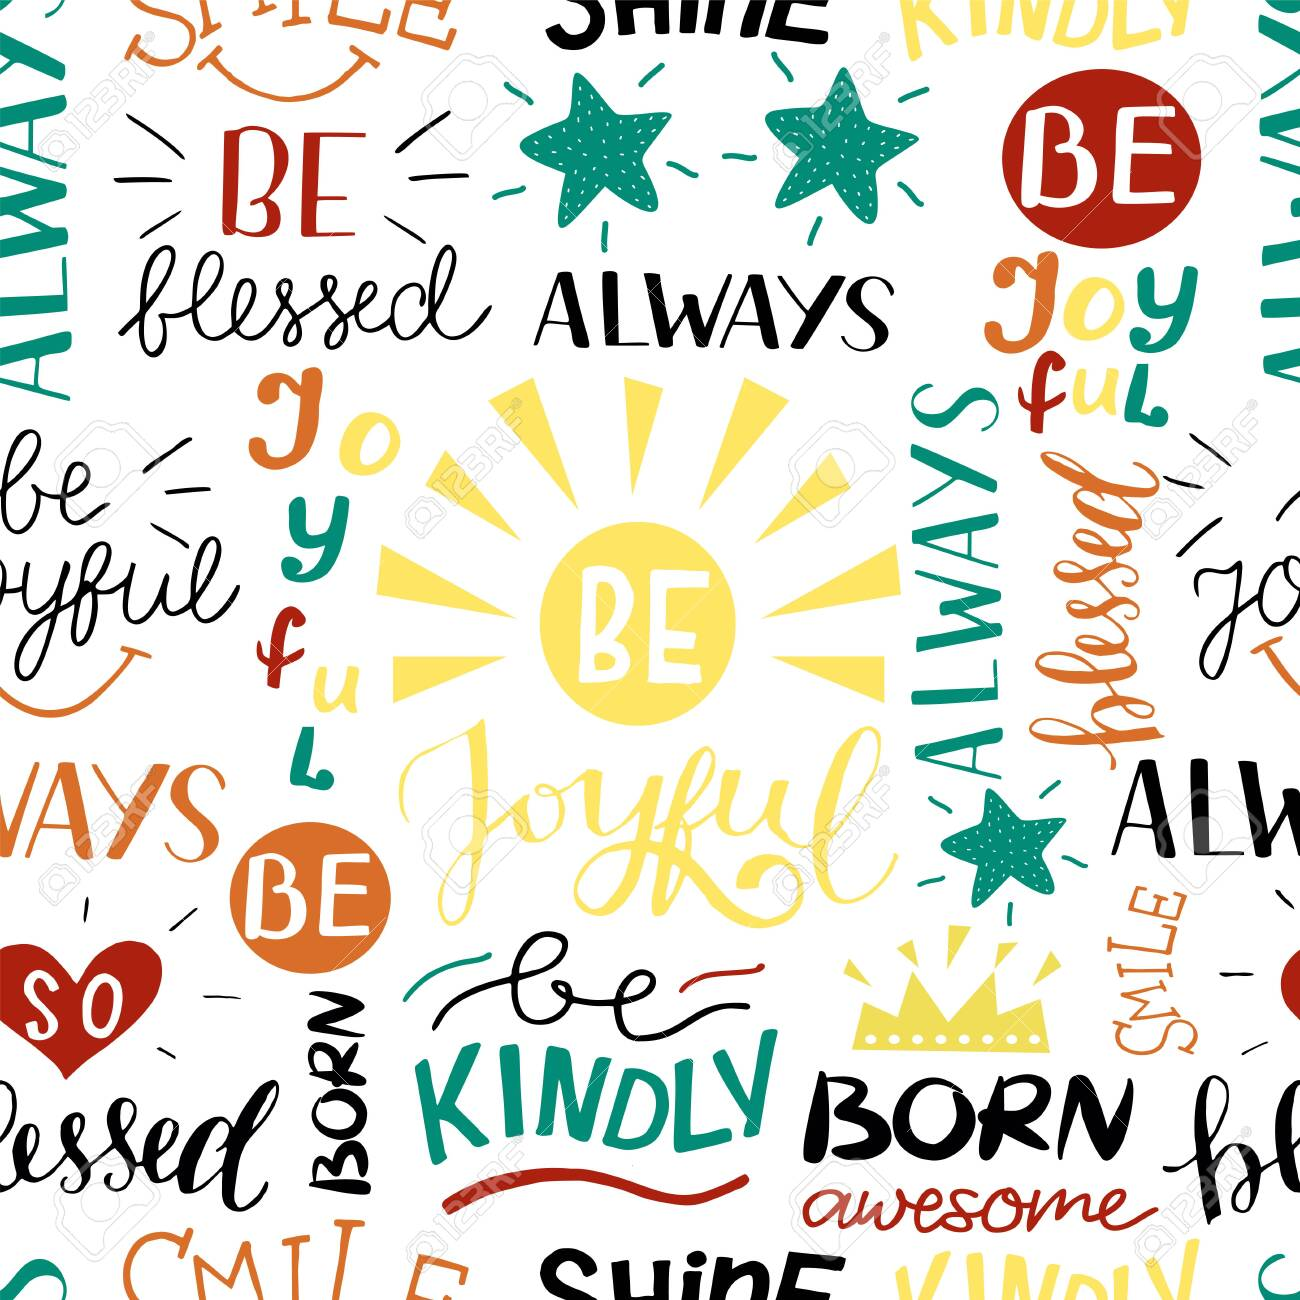 Seamless pattern with hand drawn words Be blessed, joyful, kindly, Born awesome, Smile. - 155780845